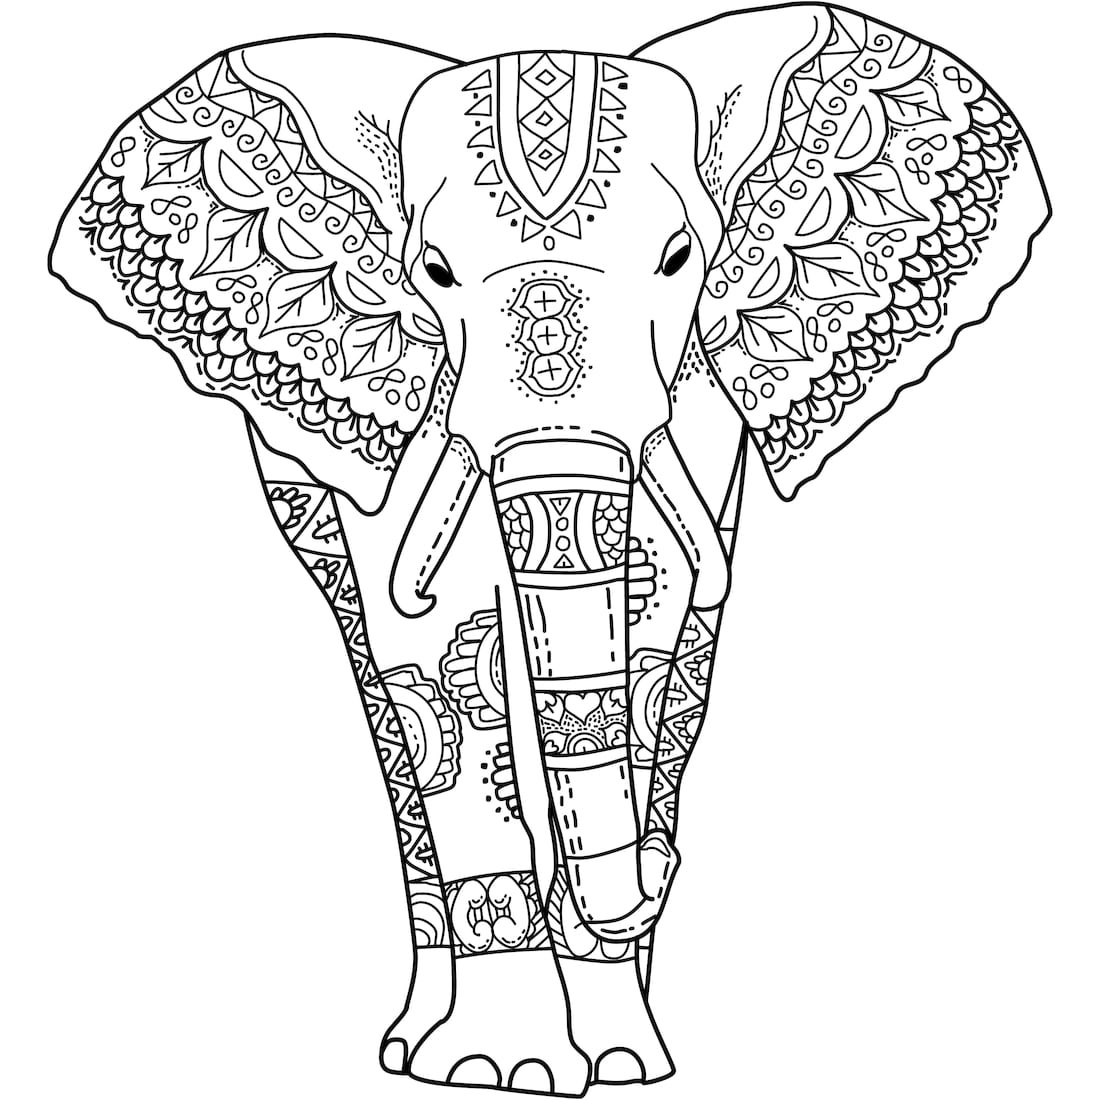 coloring book elephant images intricate elephant coloring pages at getcoloringscom coloring elephant images book